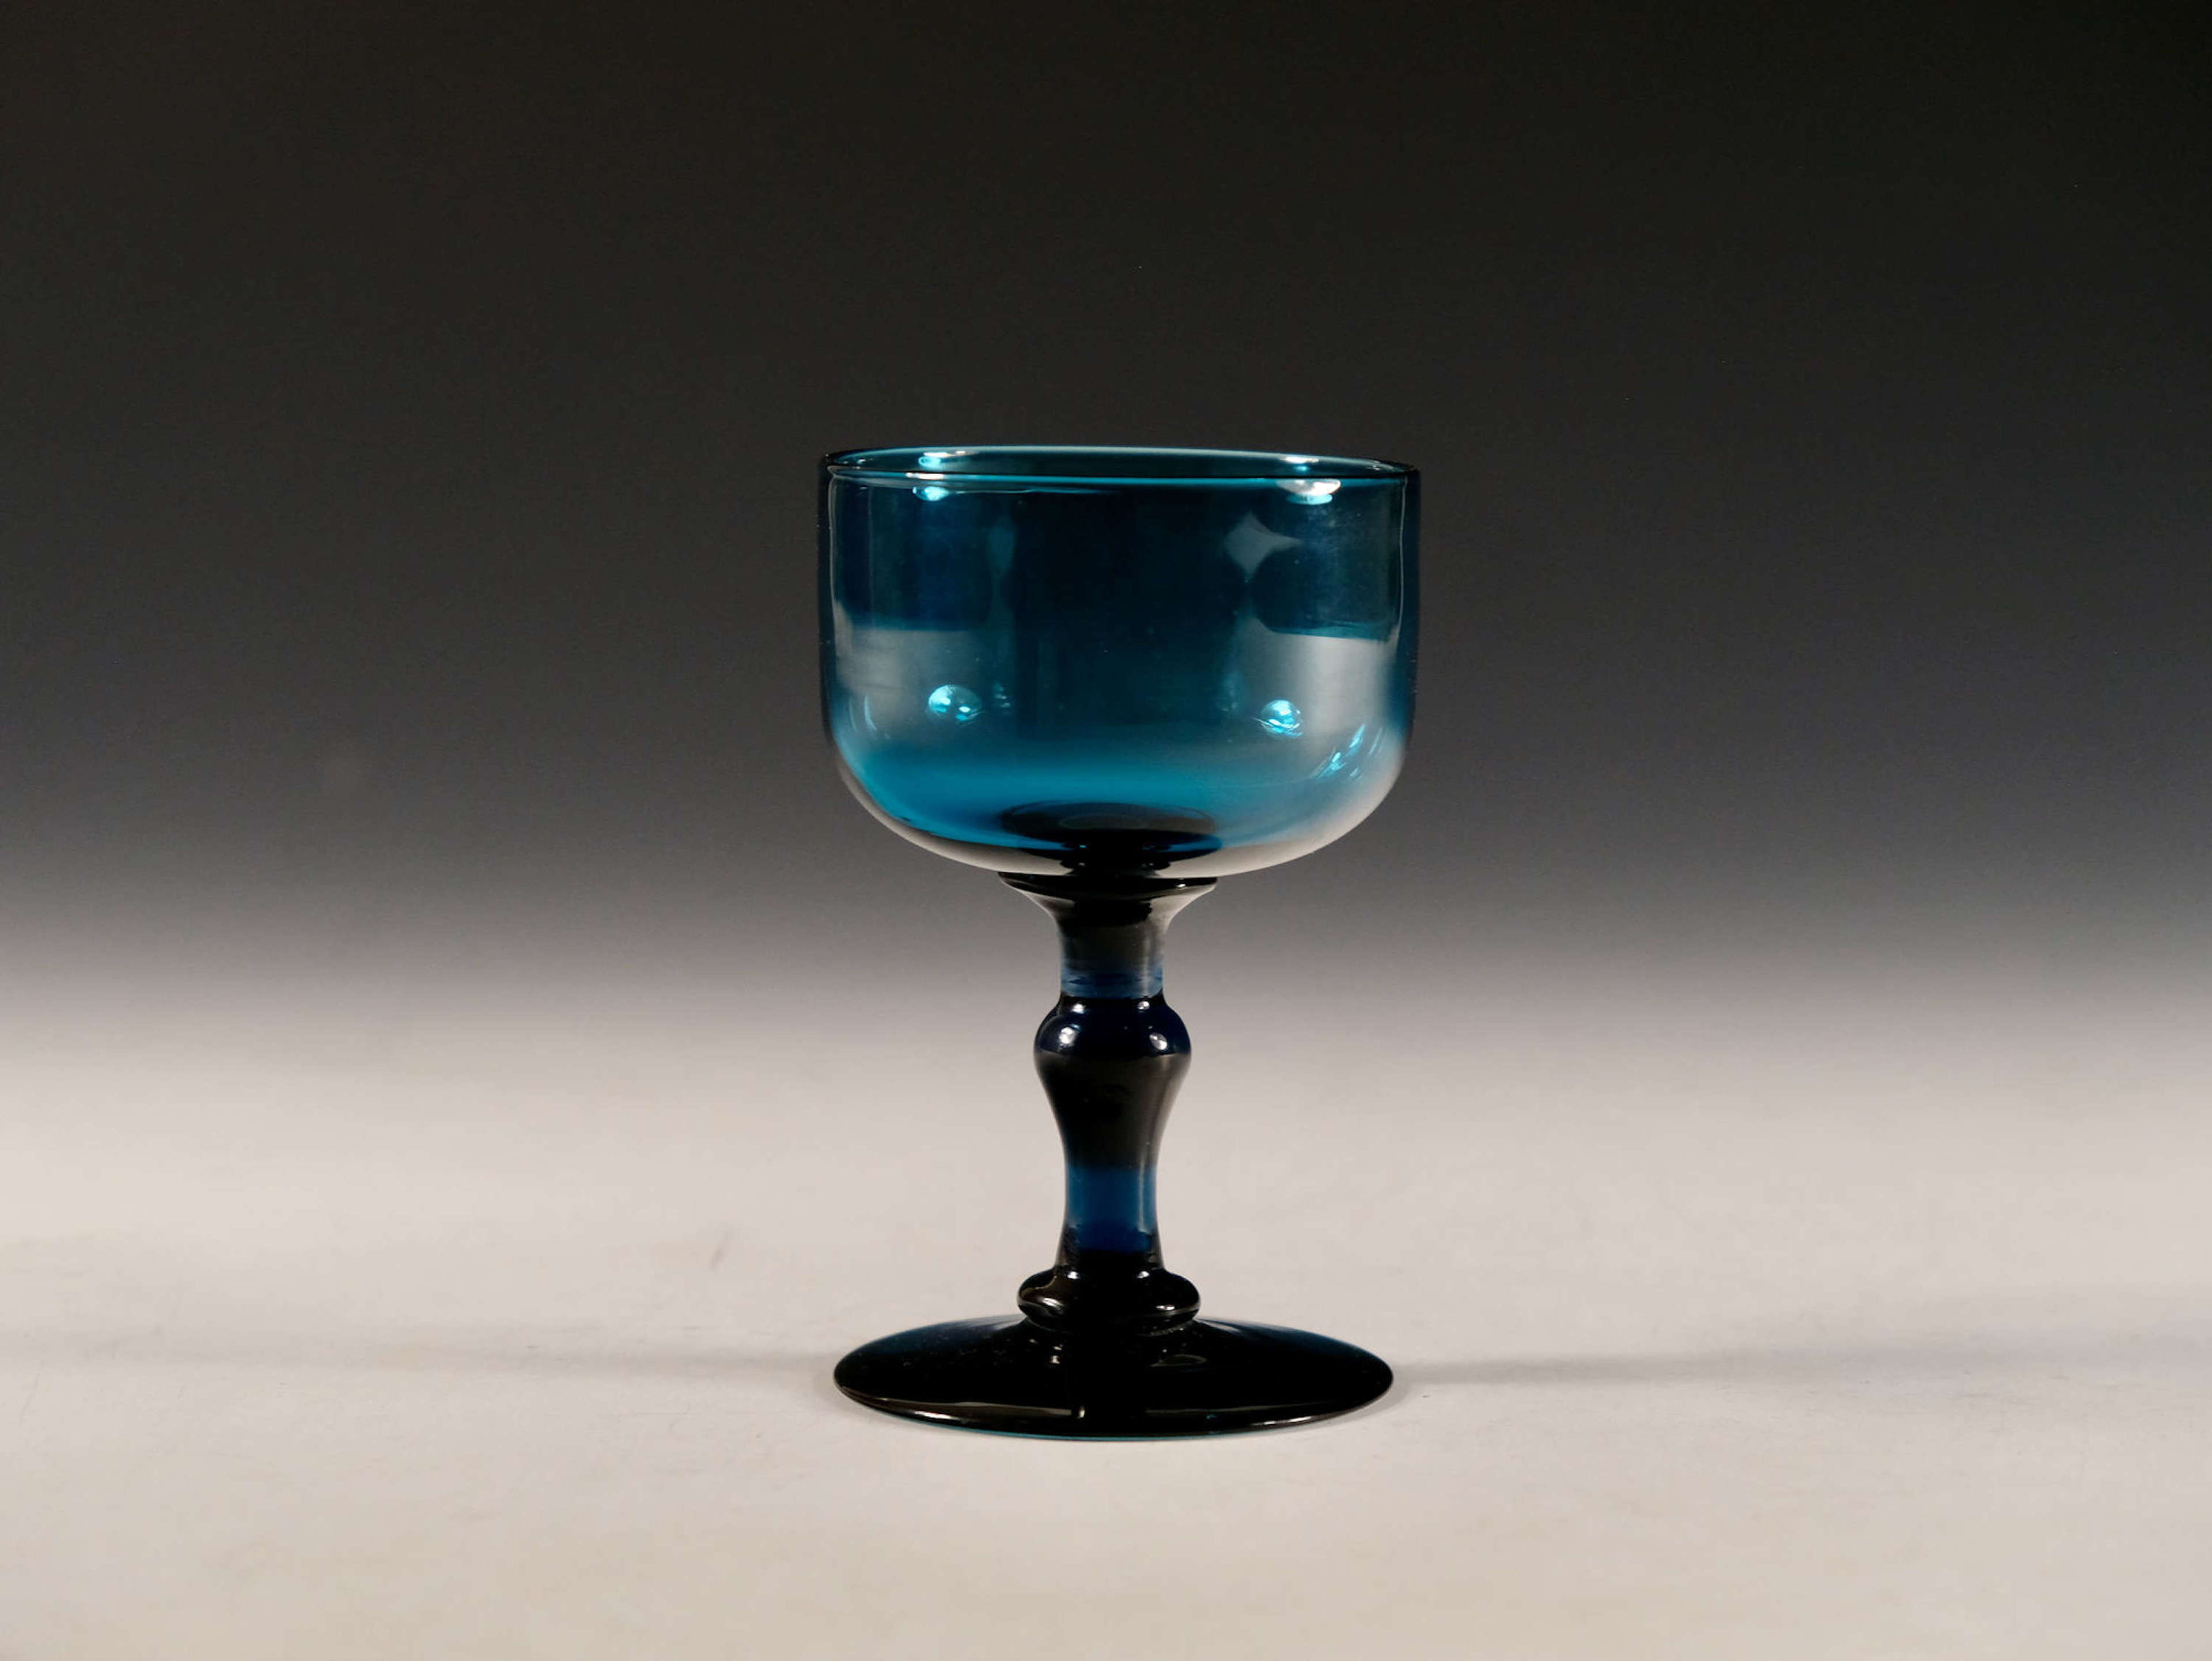 Antique glass teal wine glass English c1820